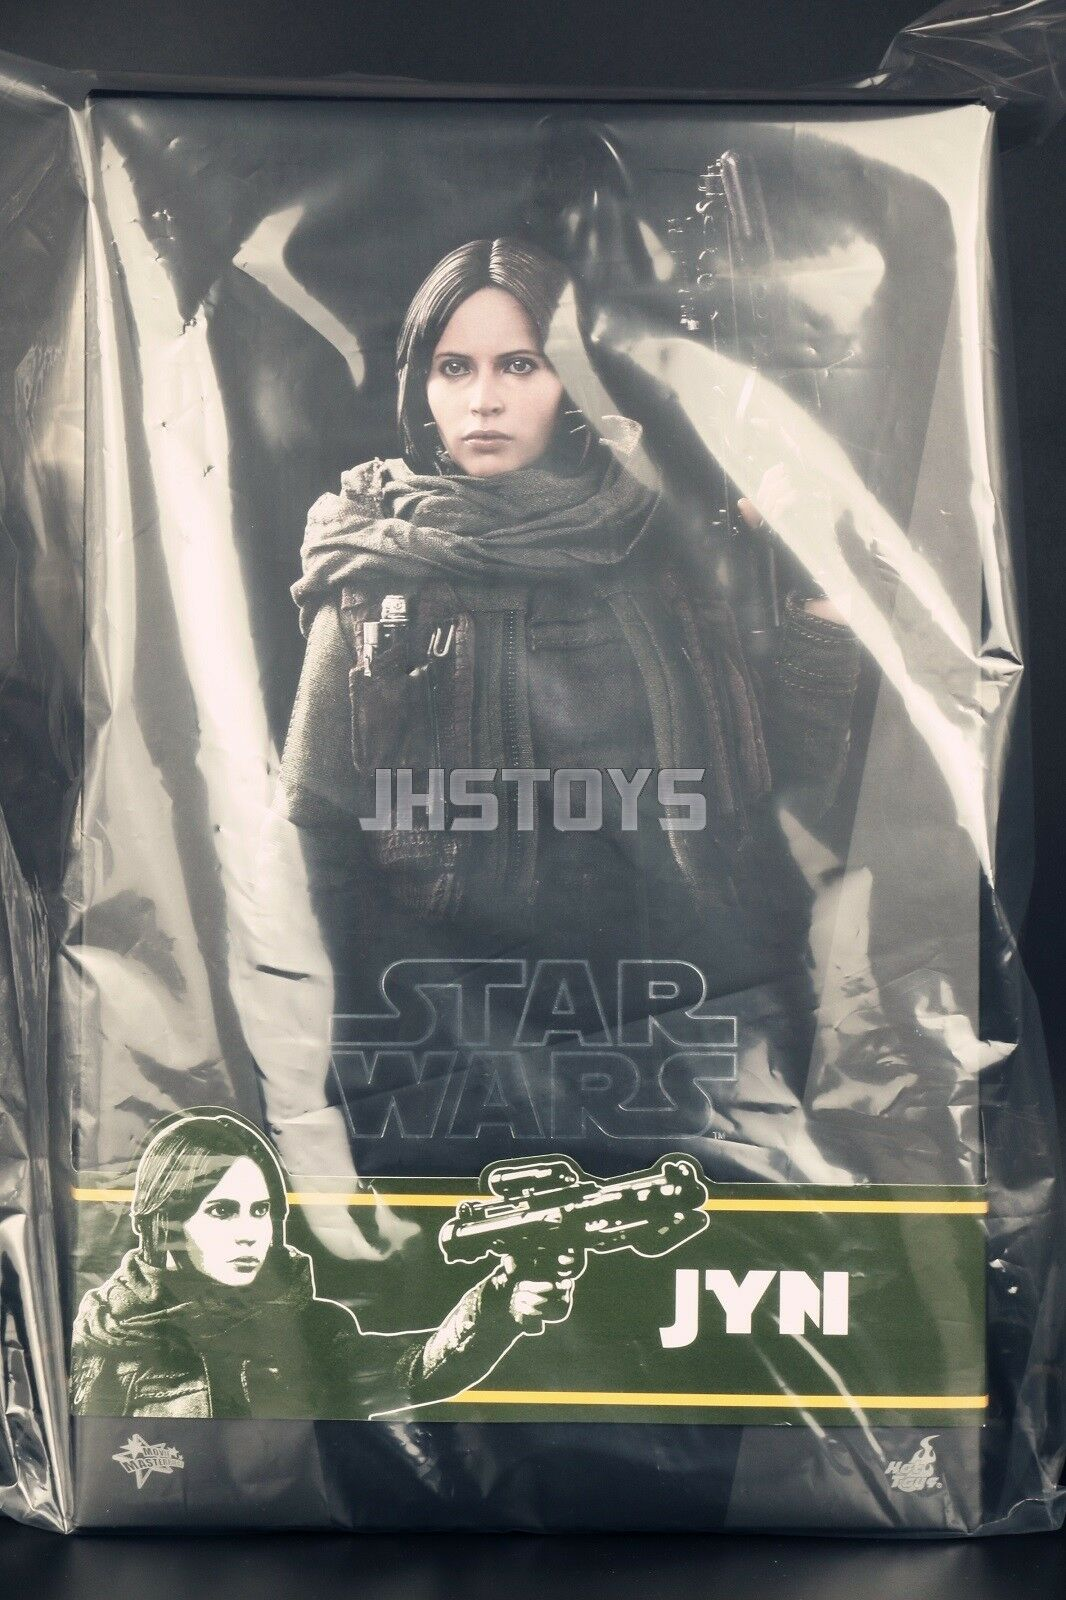 Hot Toys 1/6 Star Wars Star Wars Rogue One Jyn Erso MMS404